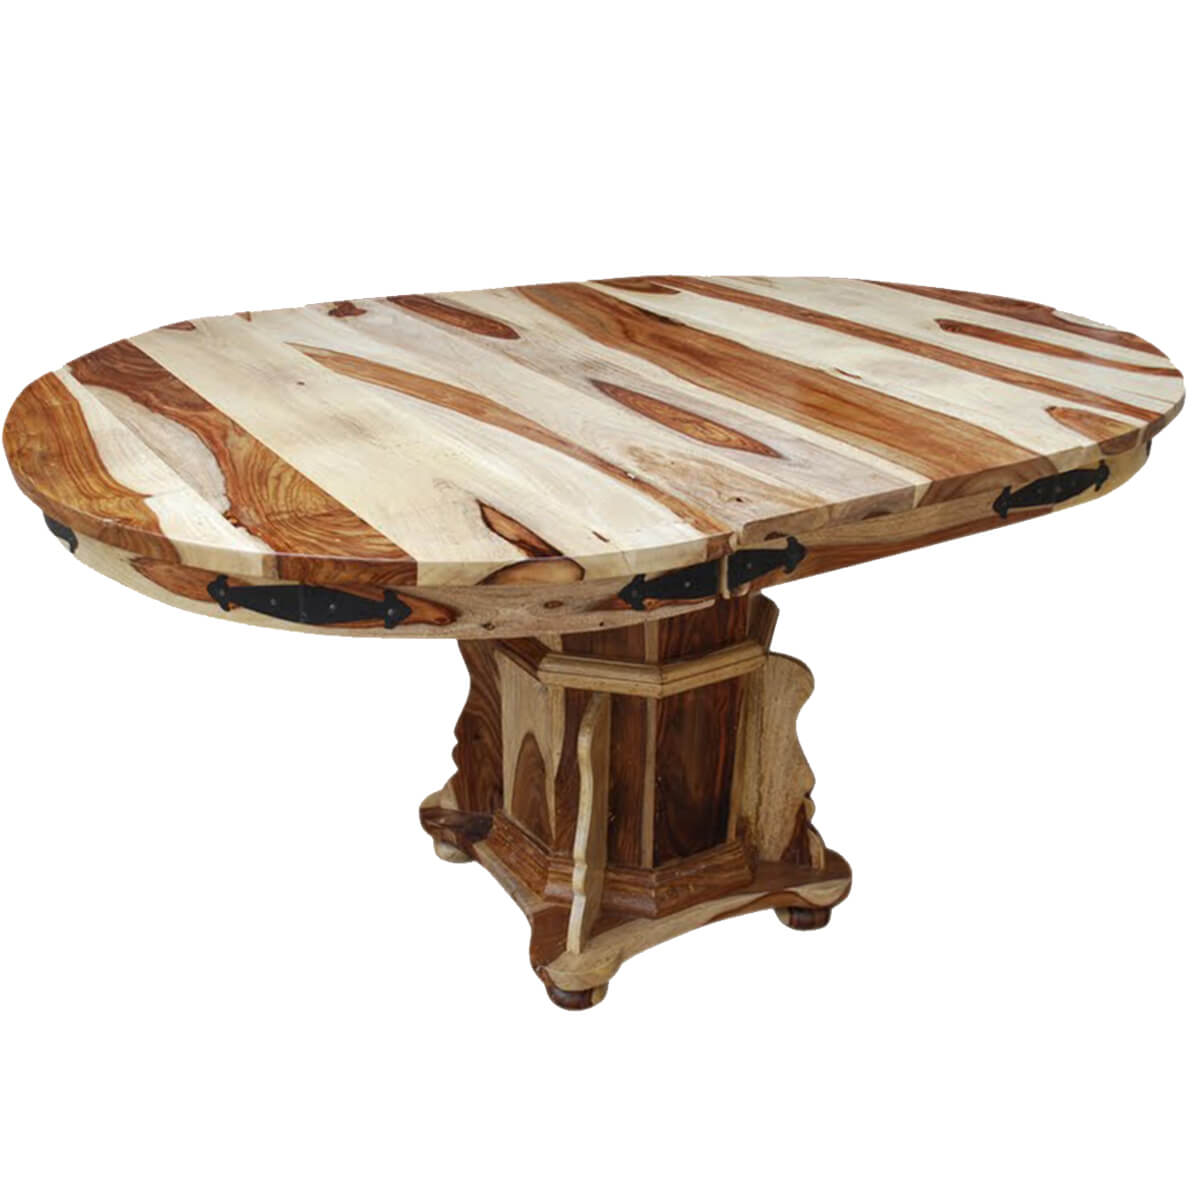 Round Solid Wood Dining Table: Dallas Ranch Solid Wood Pedestal Round Dining Table W